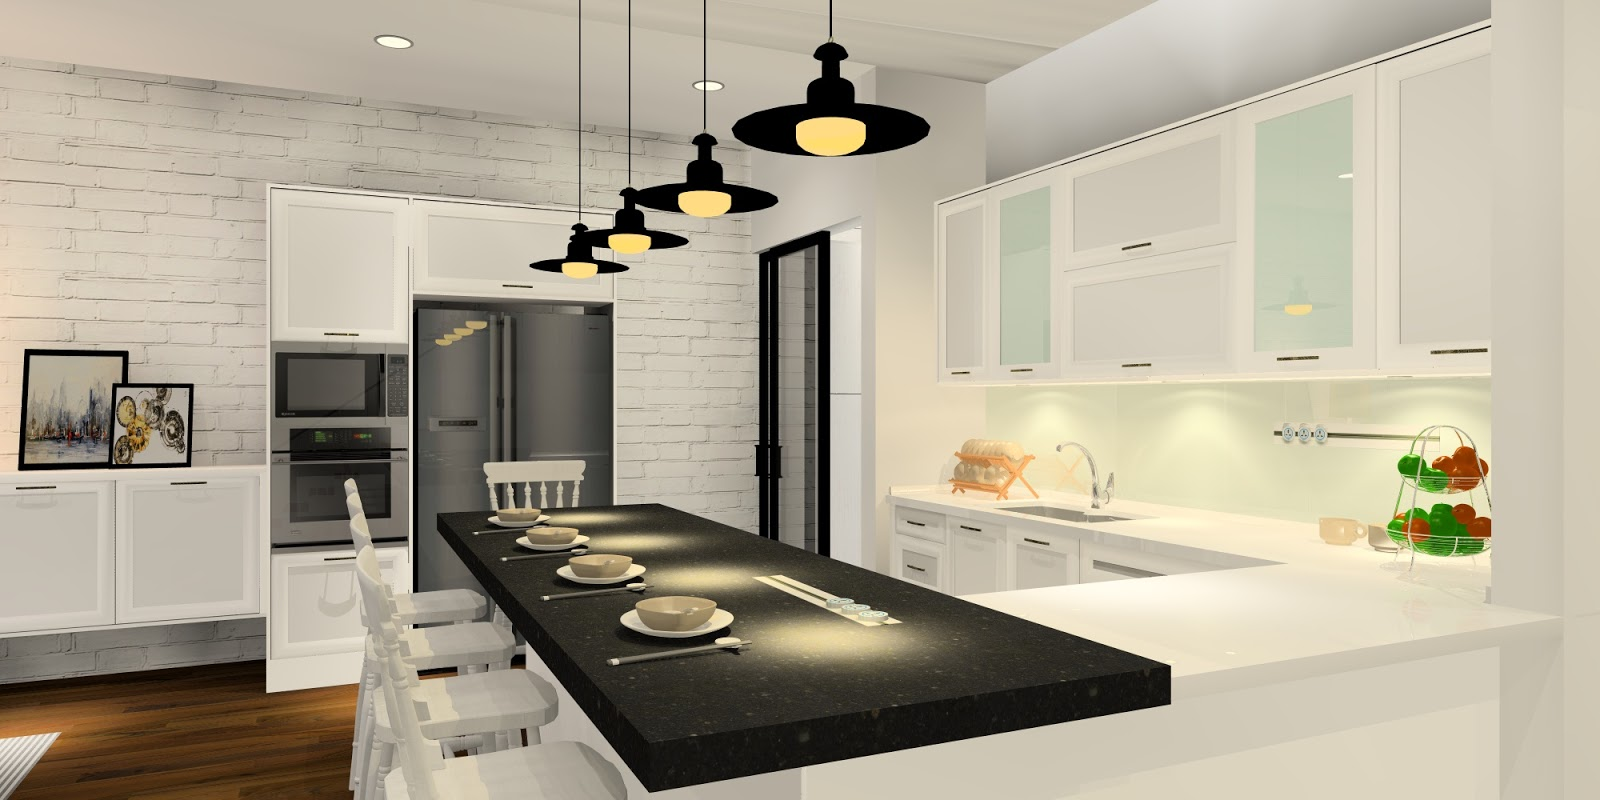 ... Contemporary Charm Kitchen Design · 6 Practical Wet And Dry ... Part 68